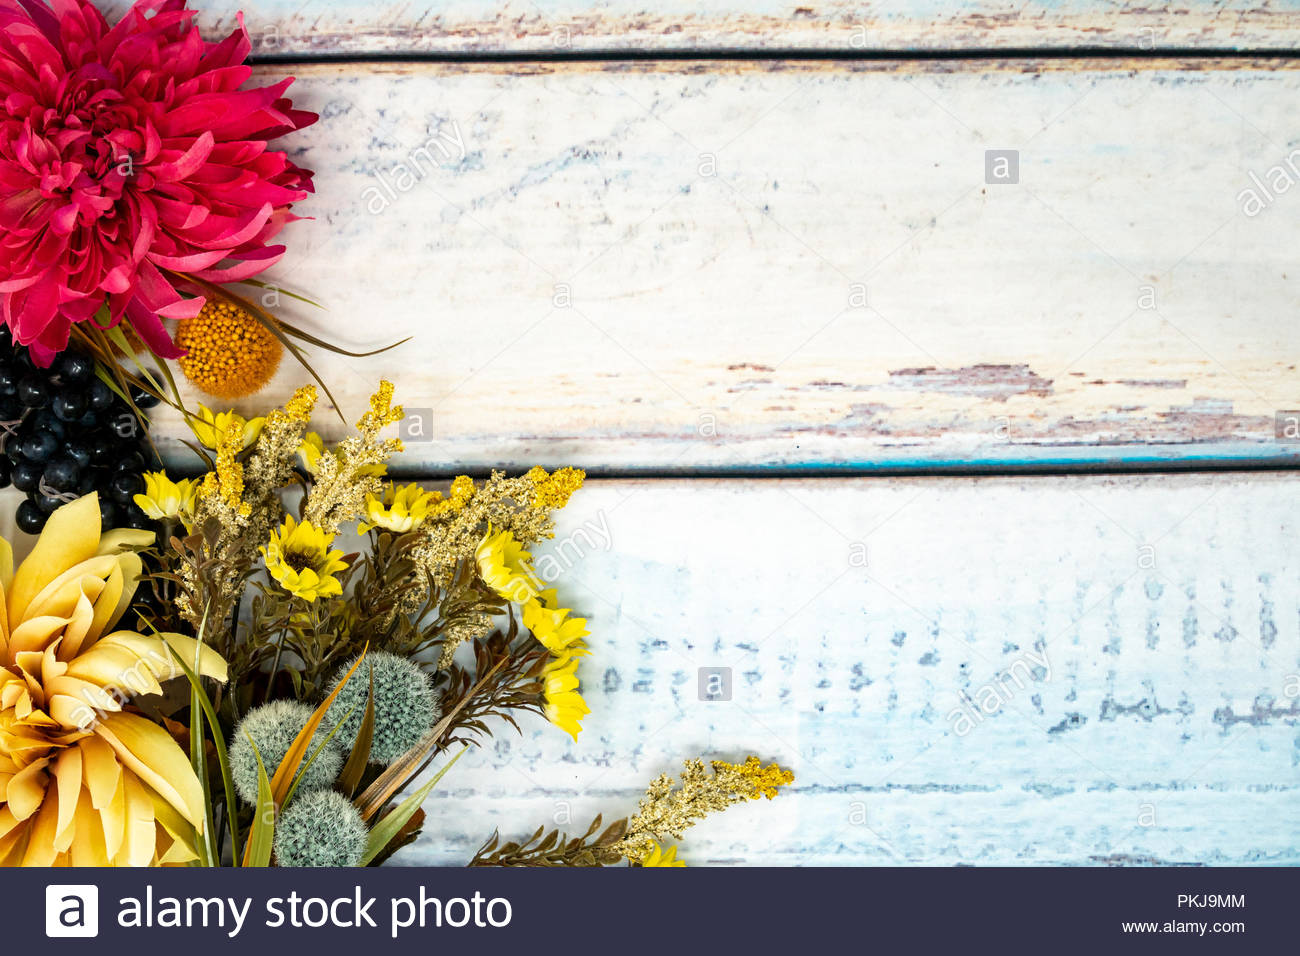 Pretty fall background on a wooden backdrop Fall flowers mums 1300x956